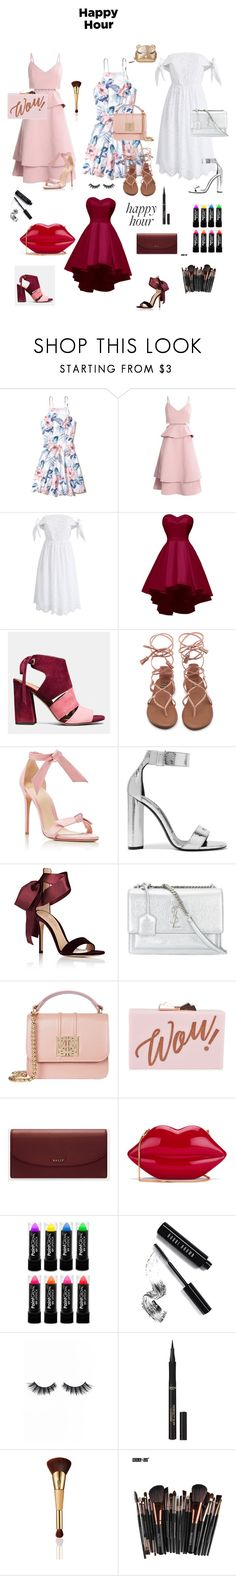 """-HappyHour-"" by valentina2 ❤ liked on Polyvore featuring Hollister Co., Chicwish, Coach, Alexandre Birman, Tom Ford, Gianvito Rossi, Yves Saint Laurent, Ted Baker, Bally and Lulu Guinness"